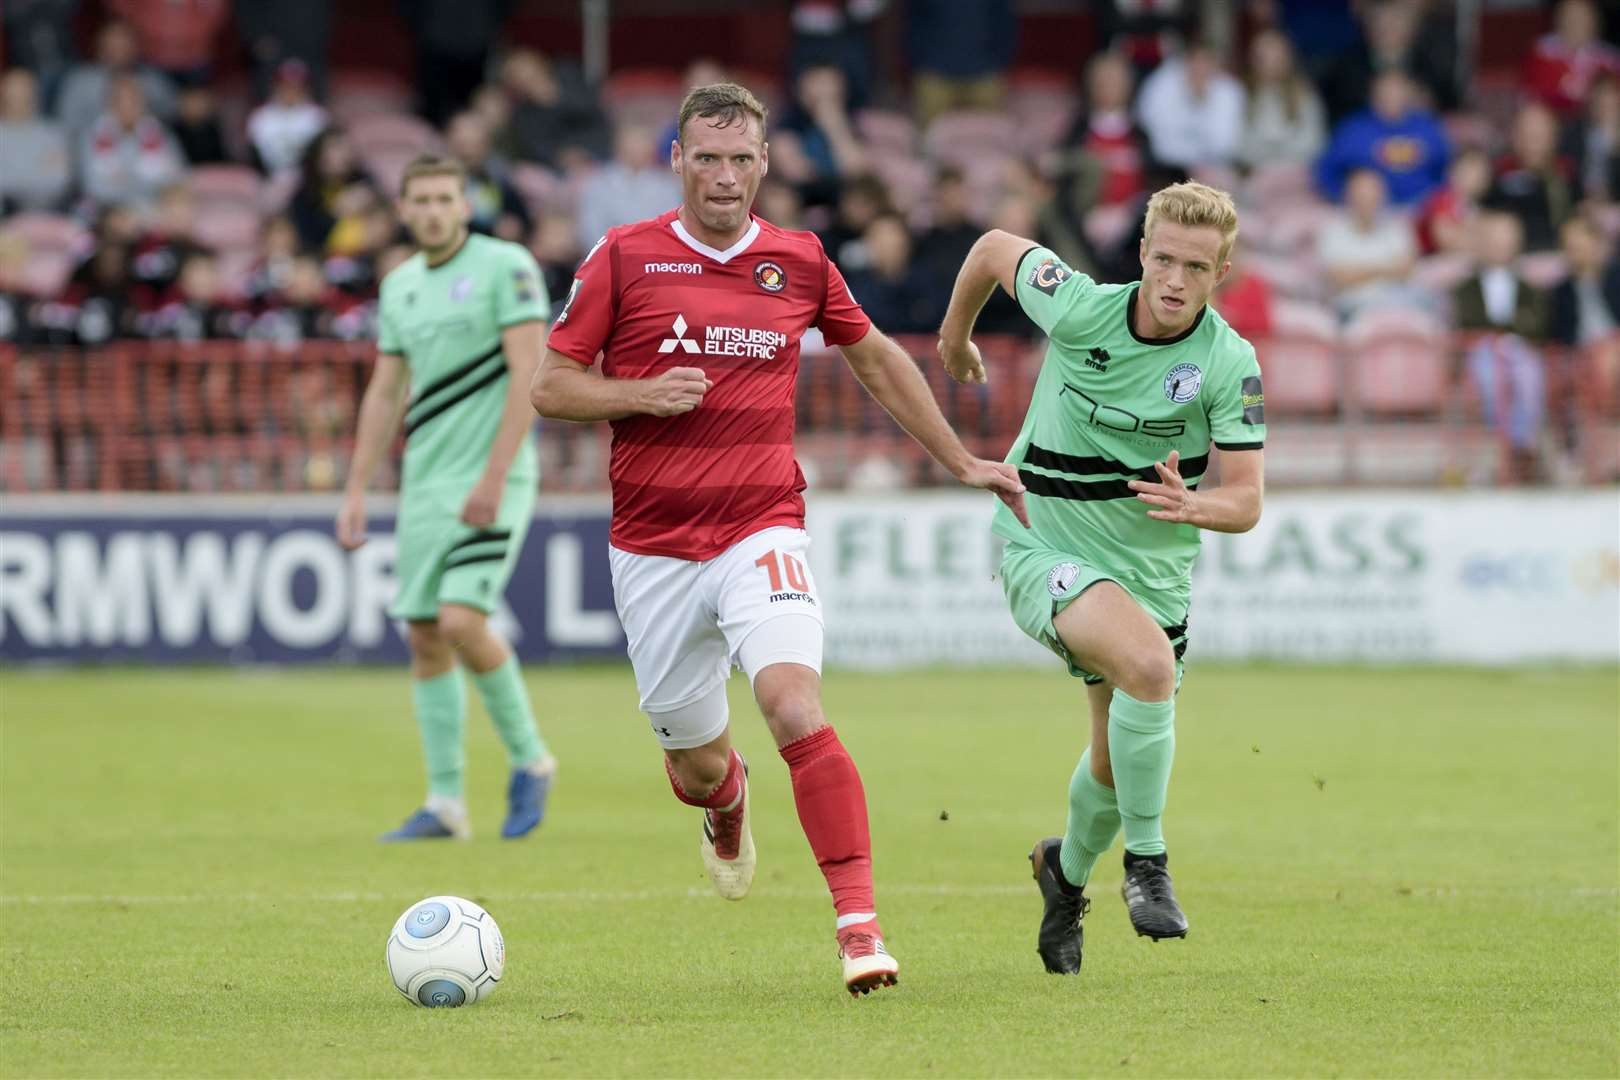 Andy Drury on the ball for Ebbsfleet Picture: Andy Payton